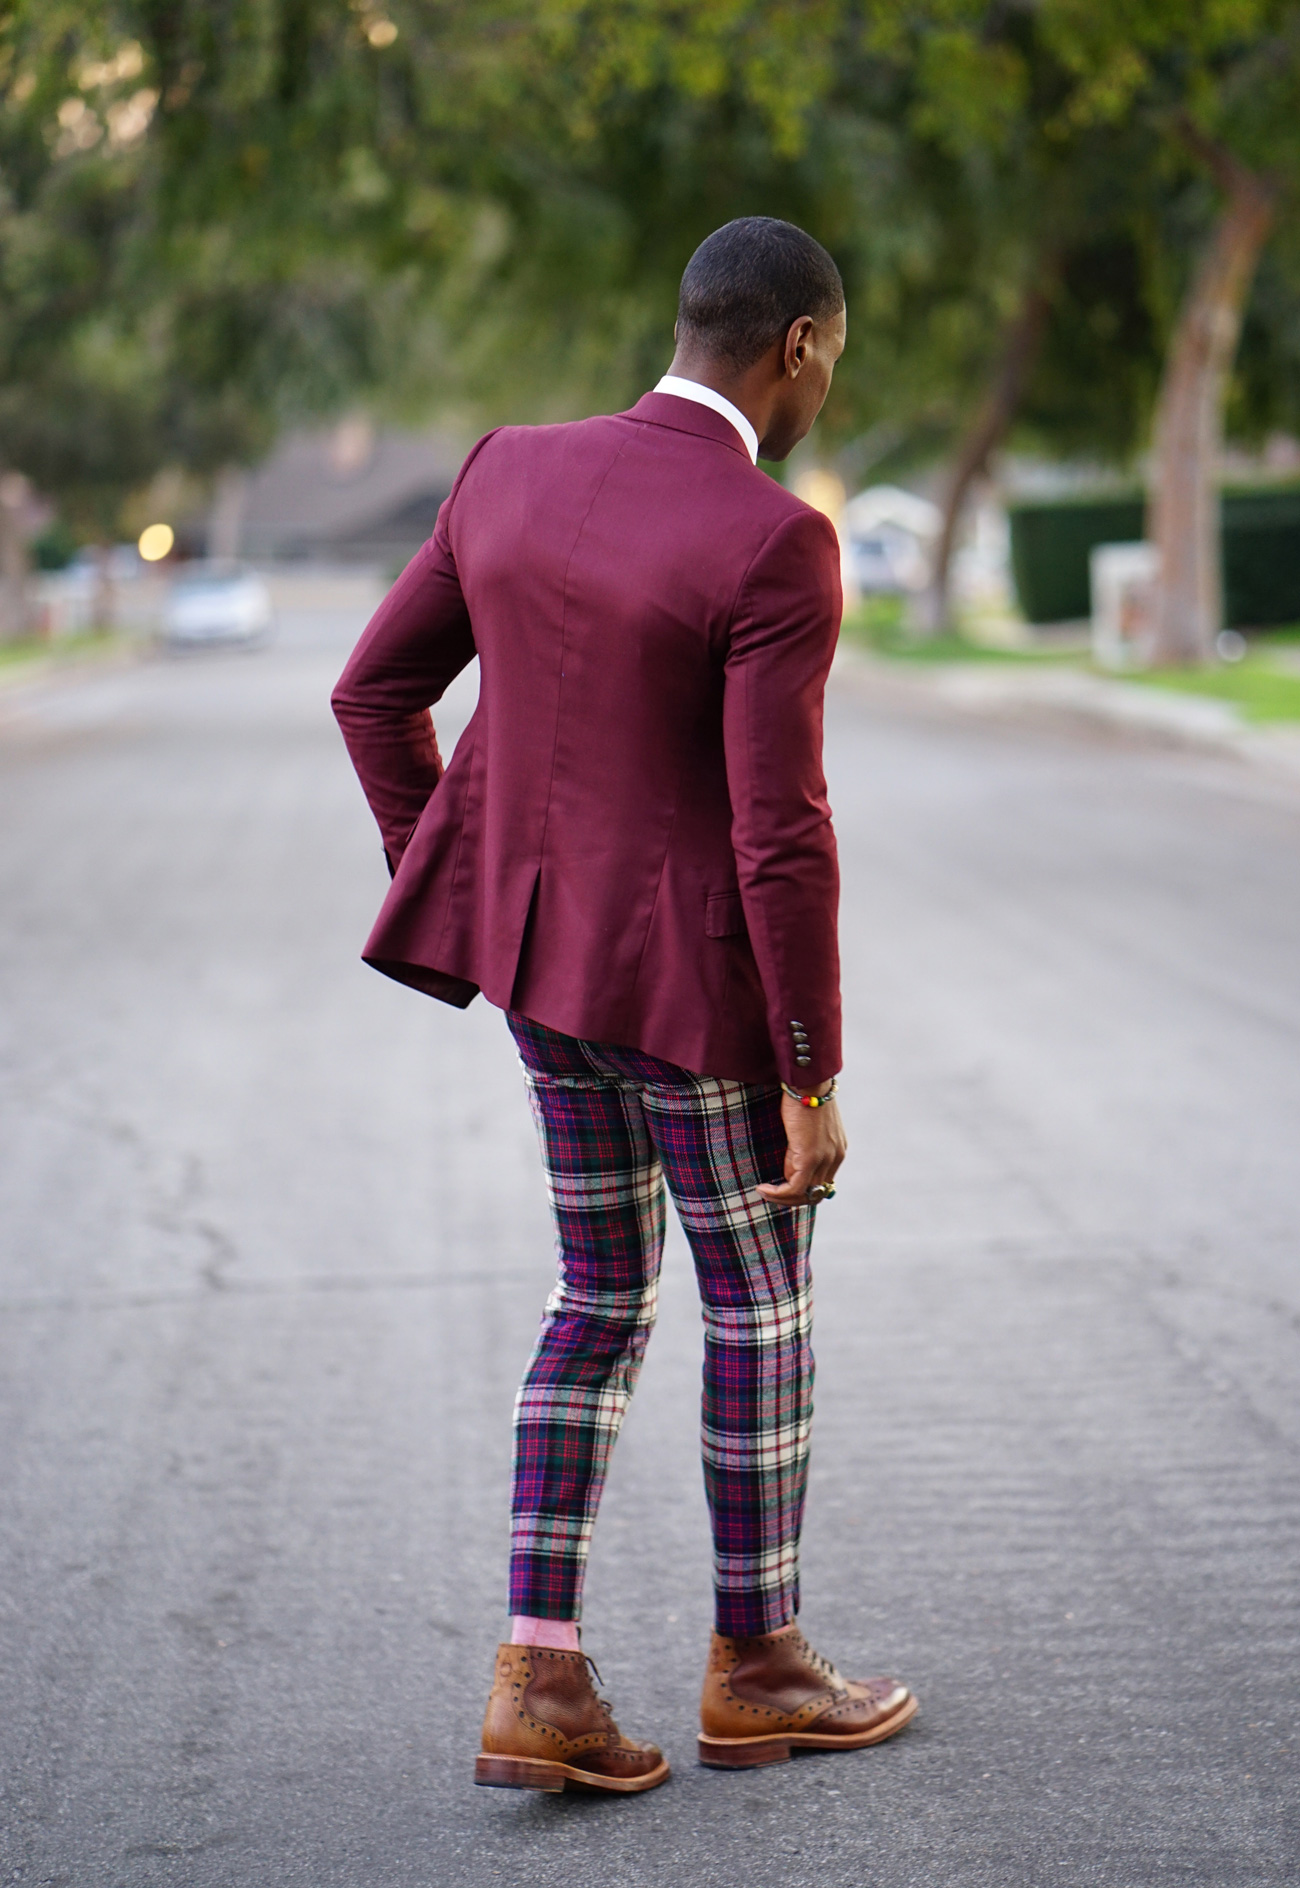 Ootd Mixing Suit Jacket W Vintage Plaid Pants Norris